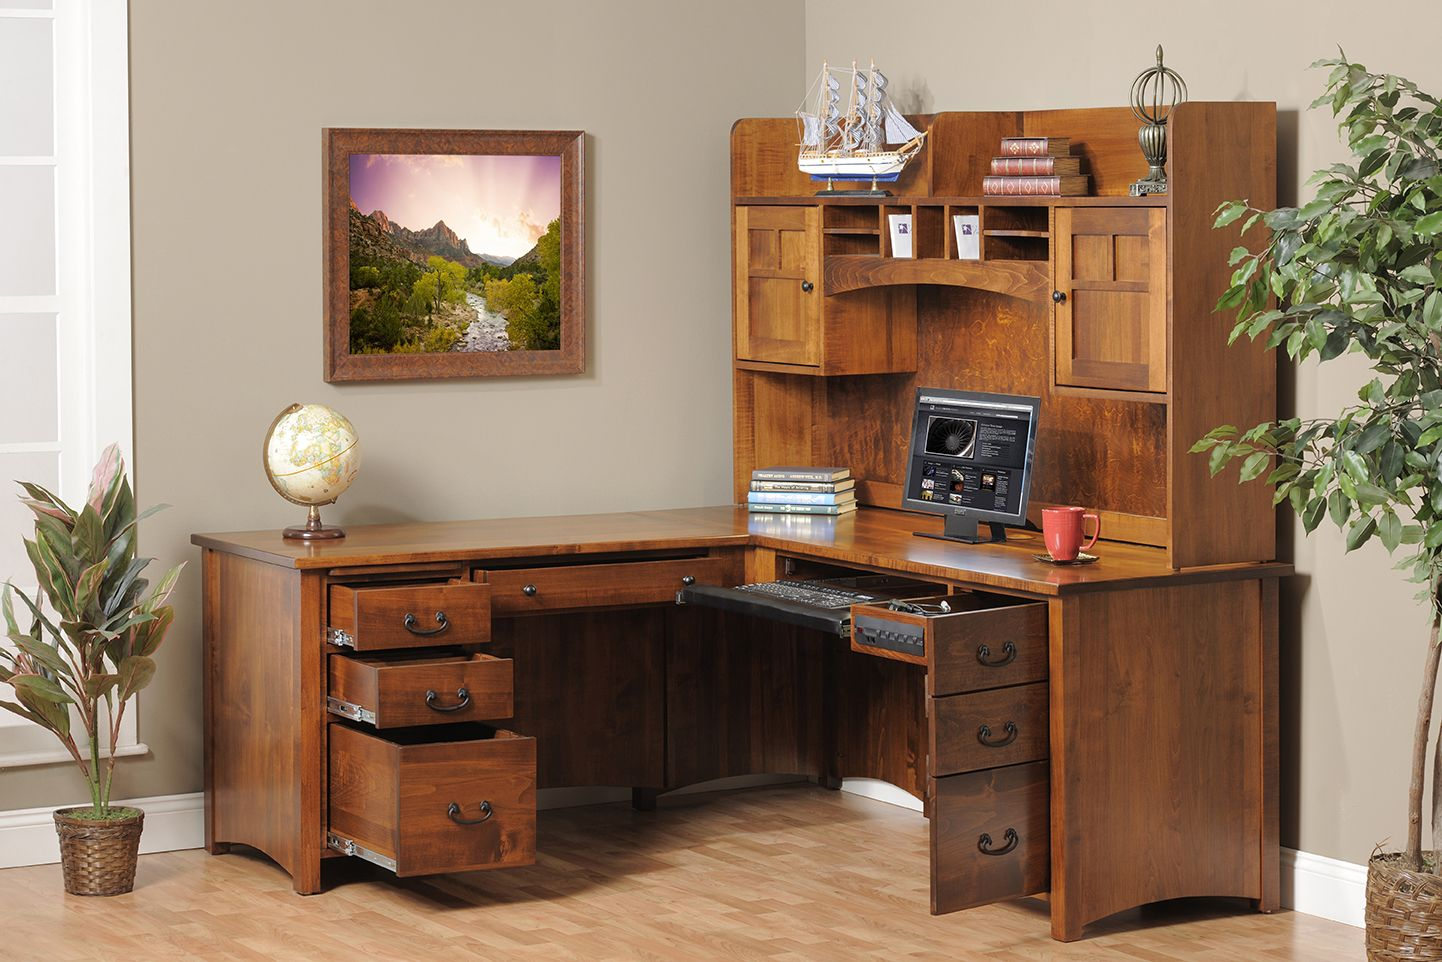 Delicieux 20 Top DIY Computer Desk Plans, That Really Work For Your Home Office. Corner  Desk With HutchDesk ...